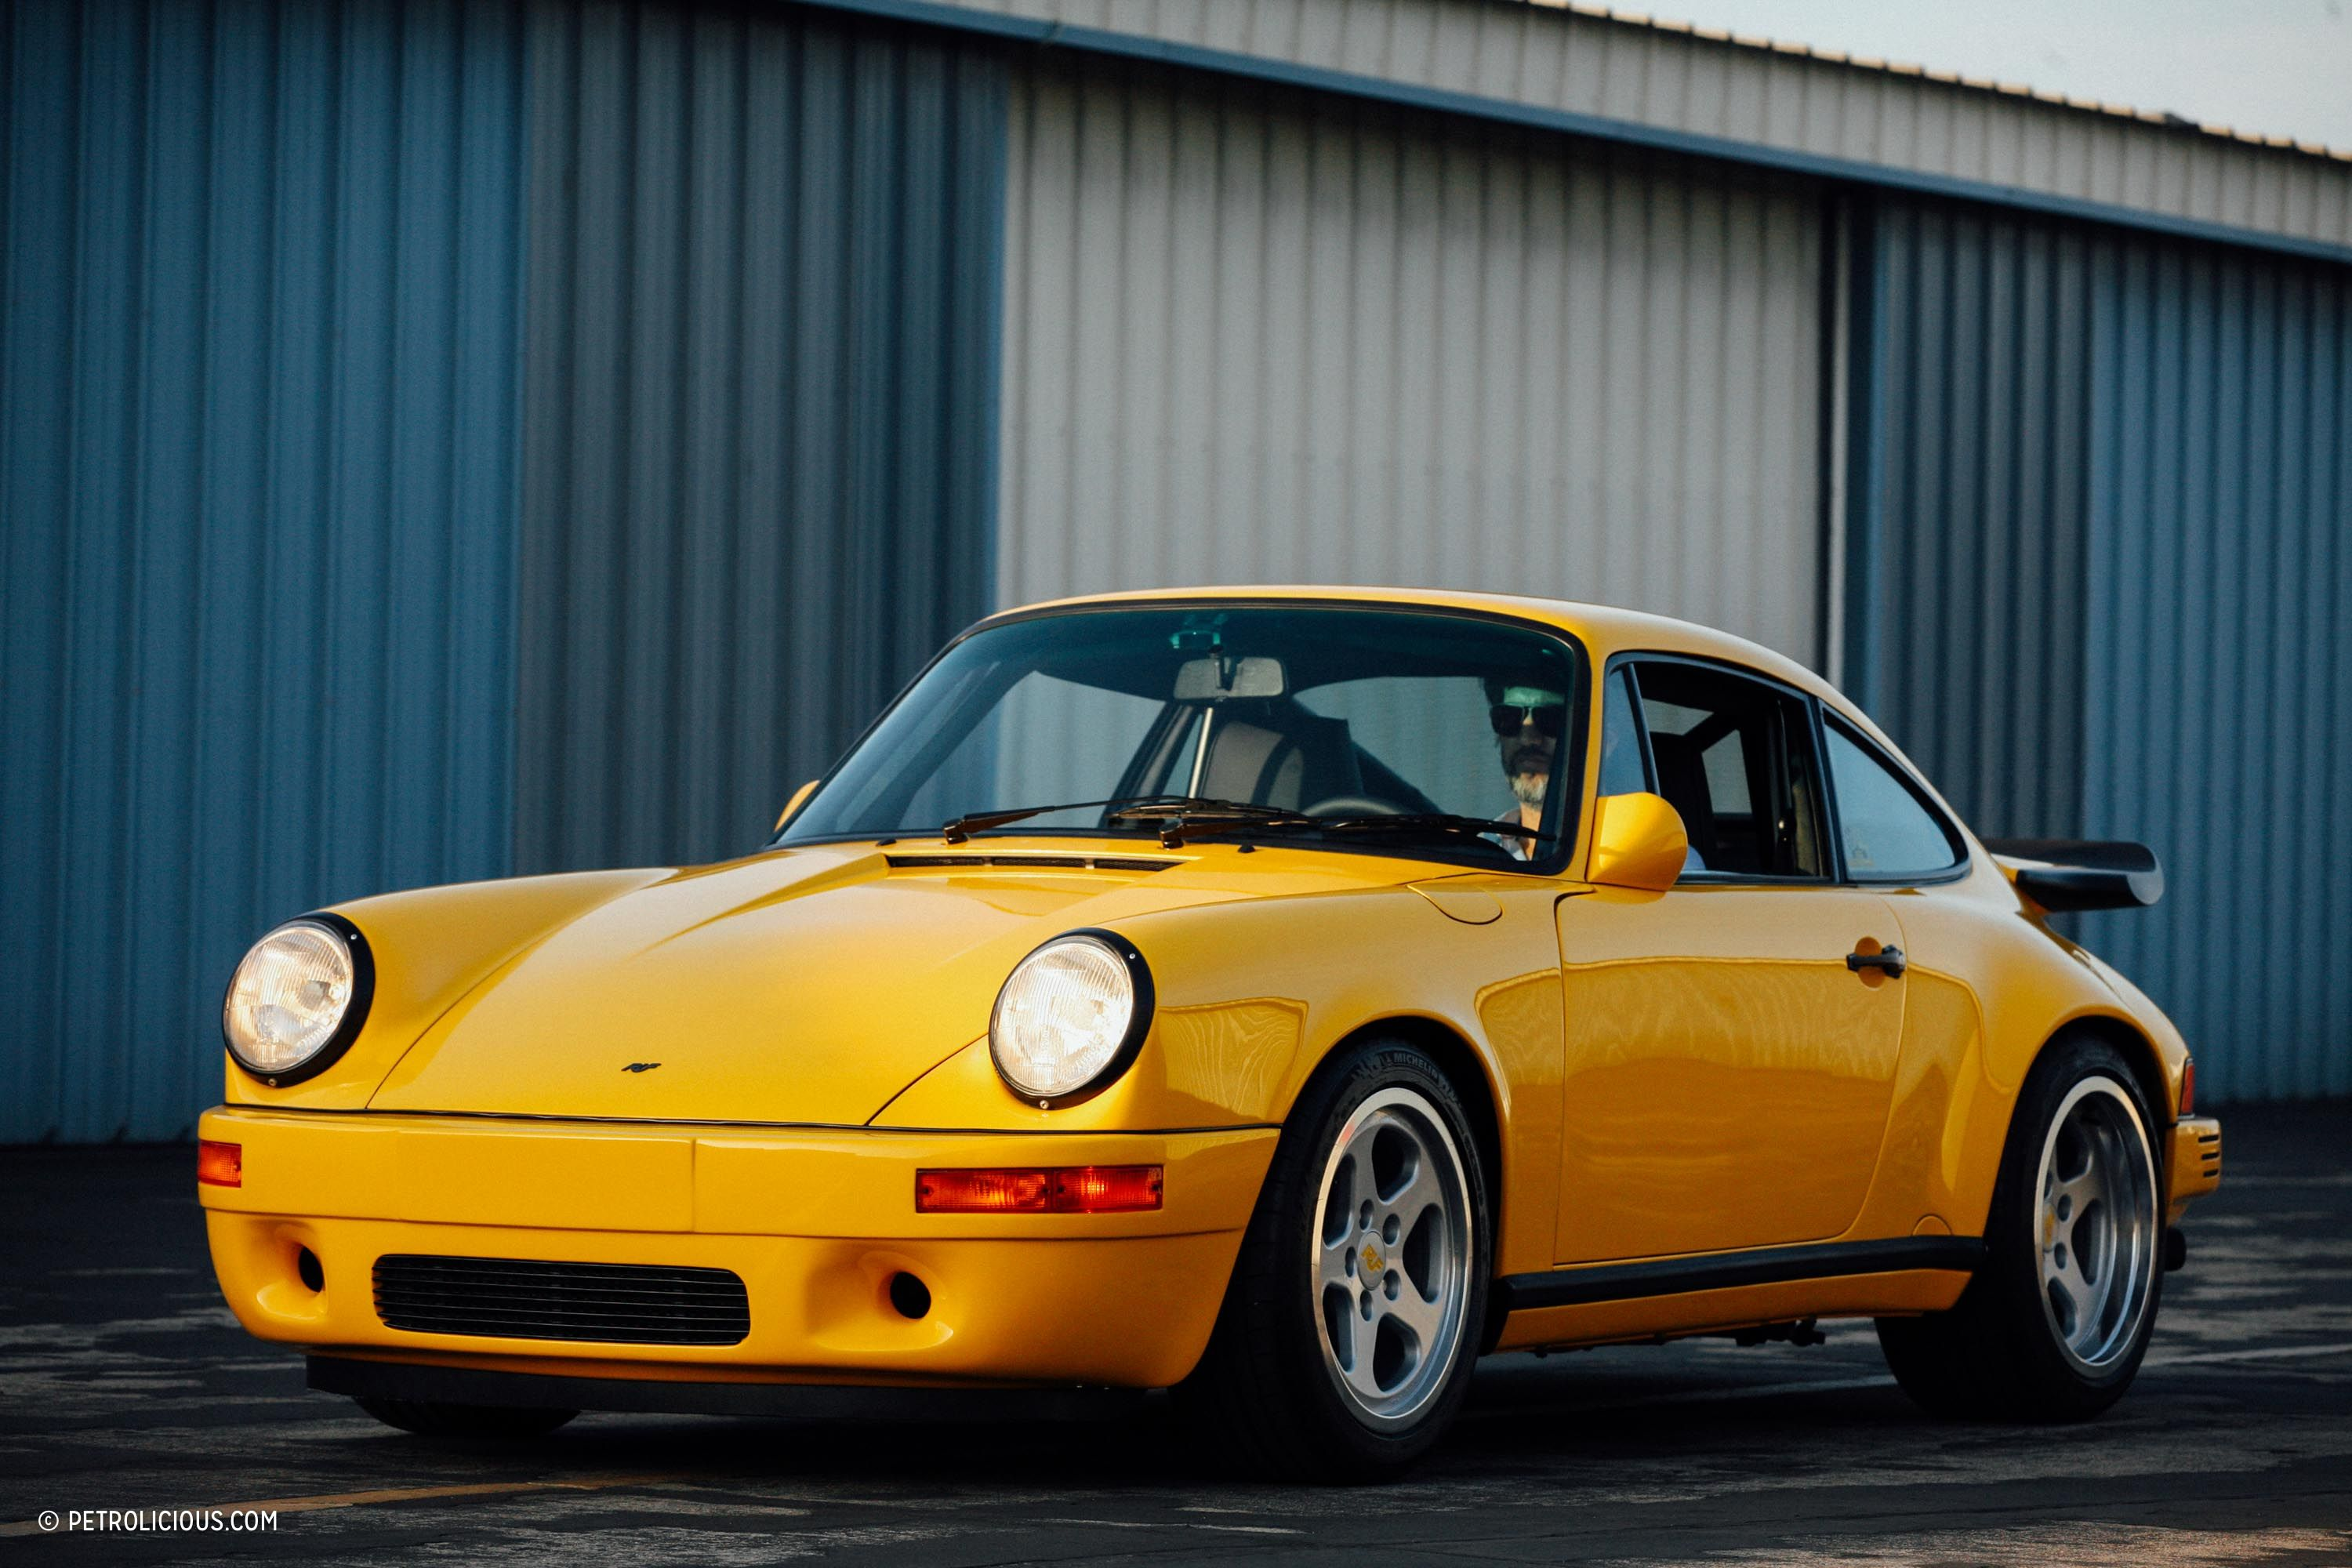 This Is What It's Like To Own A RUF Yellowbird | Luxury cars ...